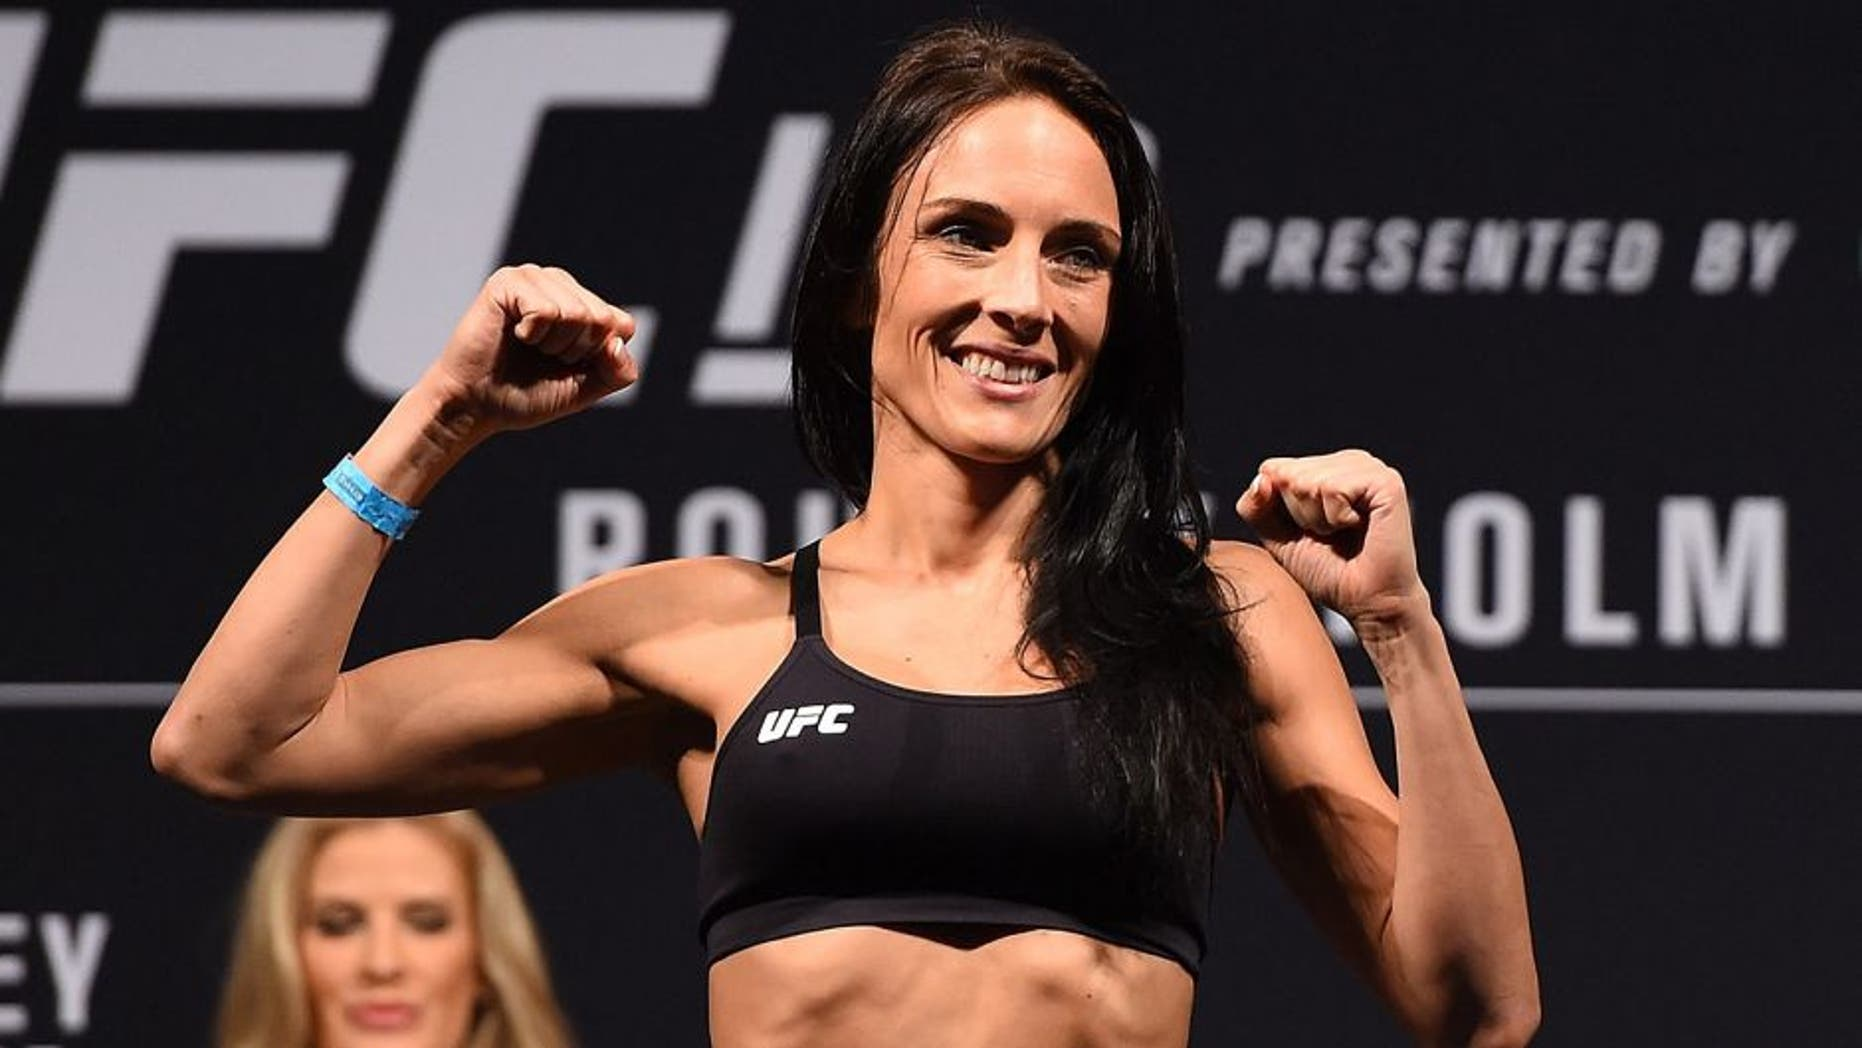 MELBOURNE, AUSTRALIA - NOVEMBER 14: Valerie Letourneau of Canada weighs in during the UFC 193 weigh-in at Etihad Stadium on November 14, 2015 in Melbourne, Australia. (Photo by Josh Hedges/Zuffa LLC/Zuffa LLC via Getty Images)